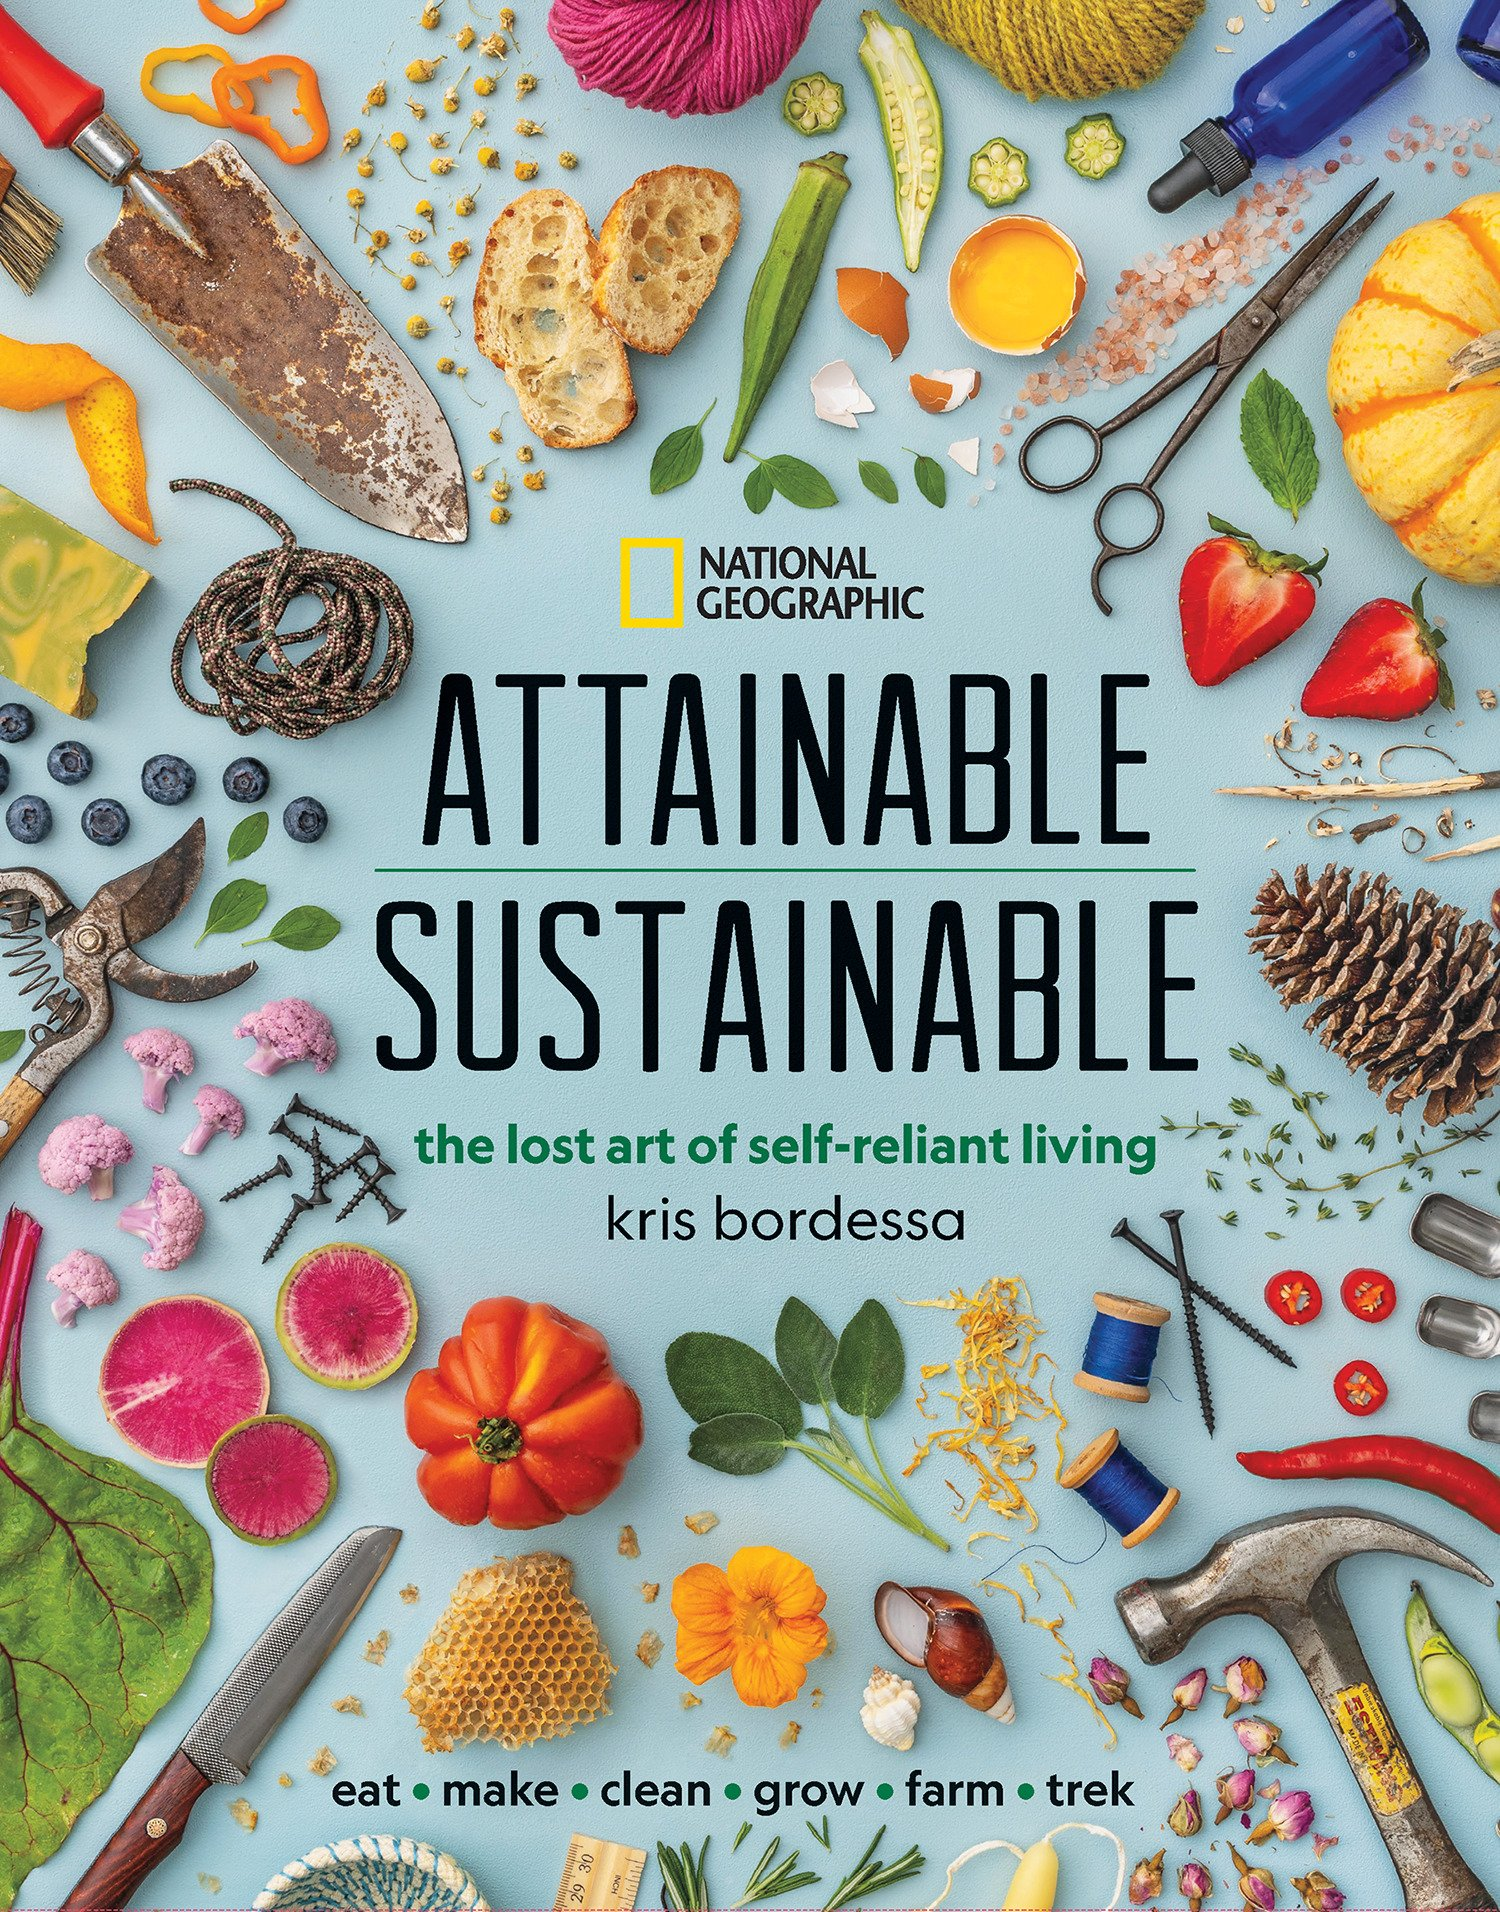 Attainable Sustainable The Lost Art of Self-Reliant Living